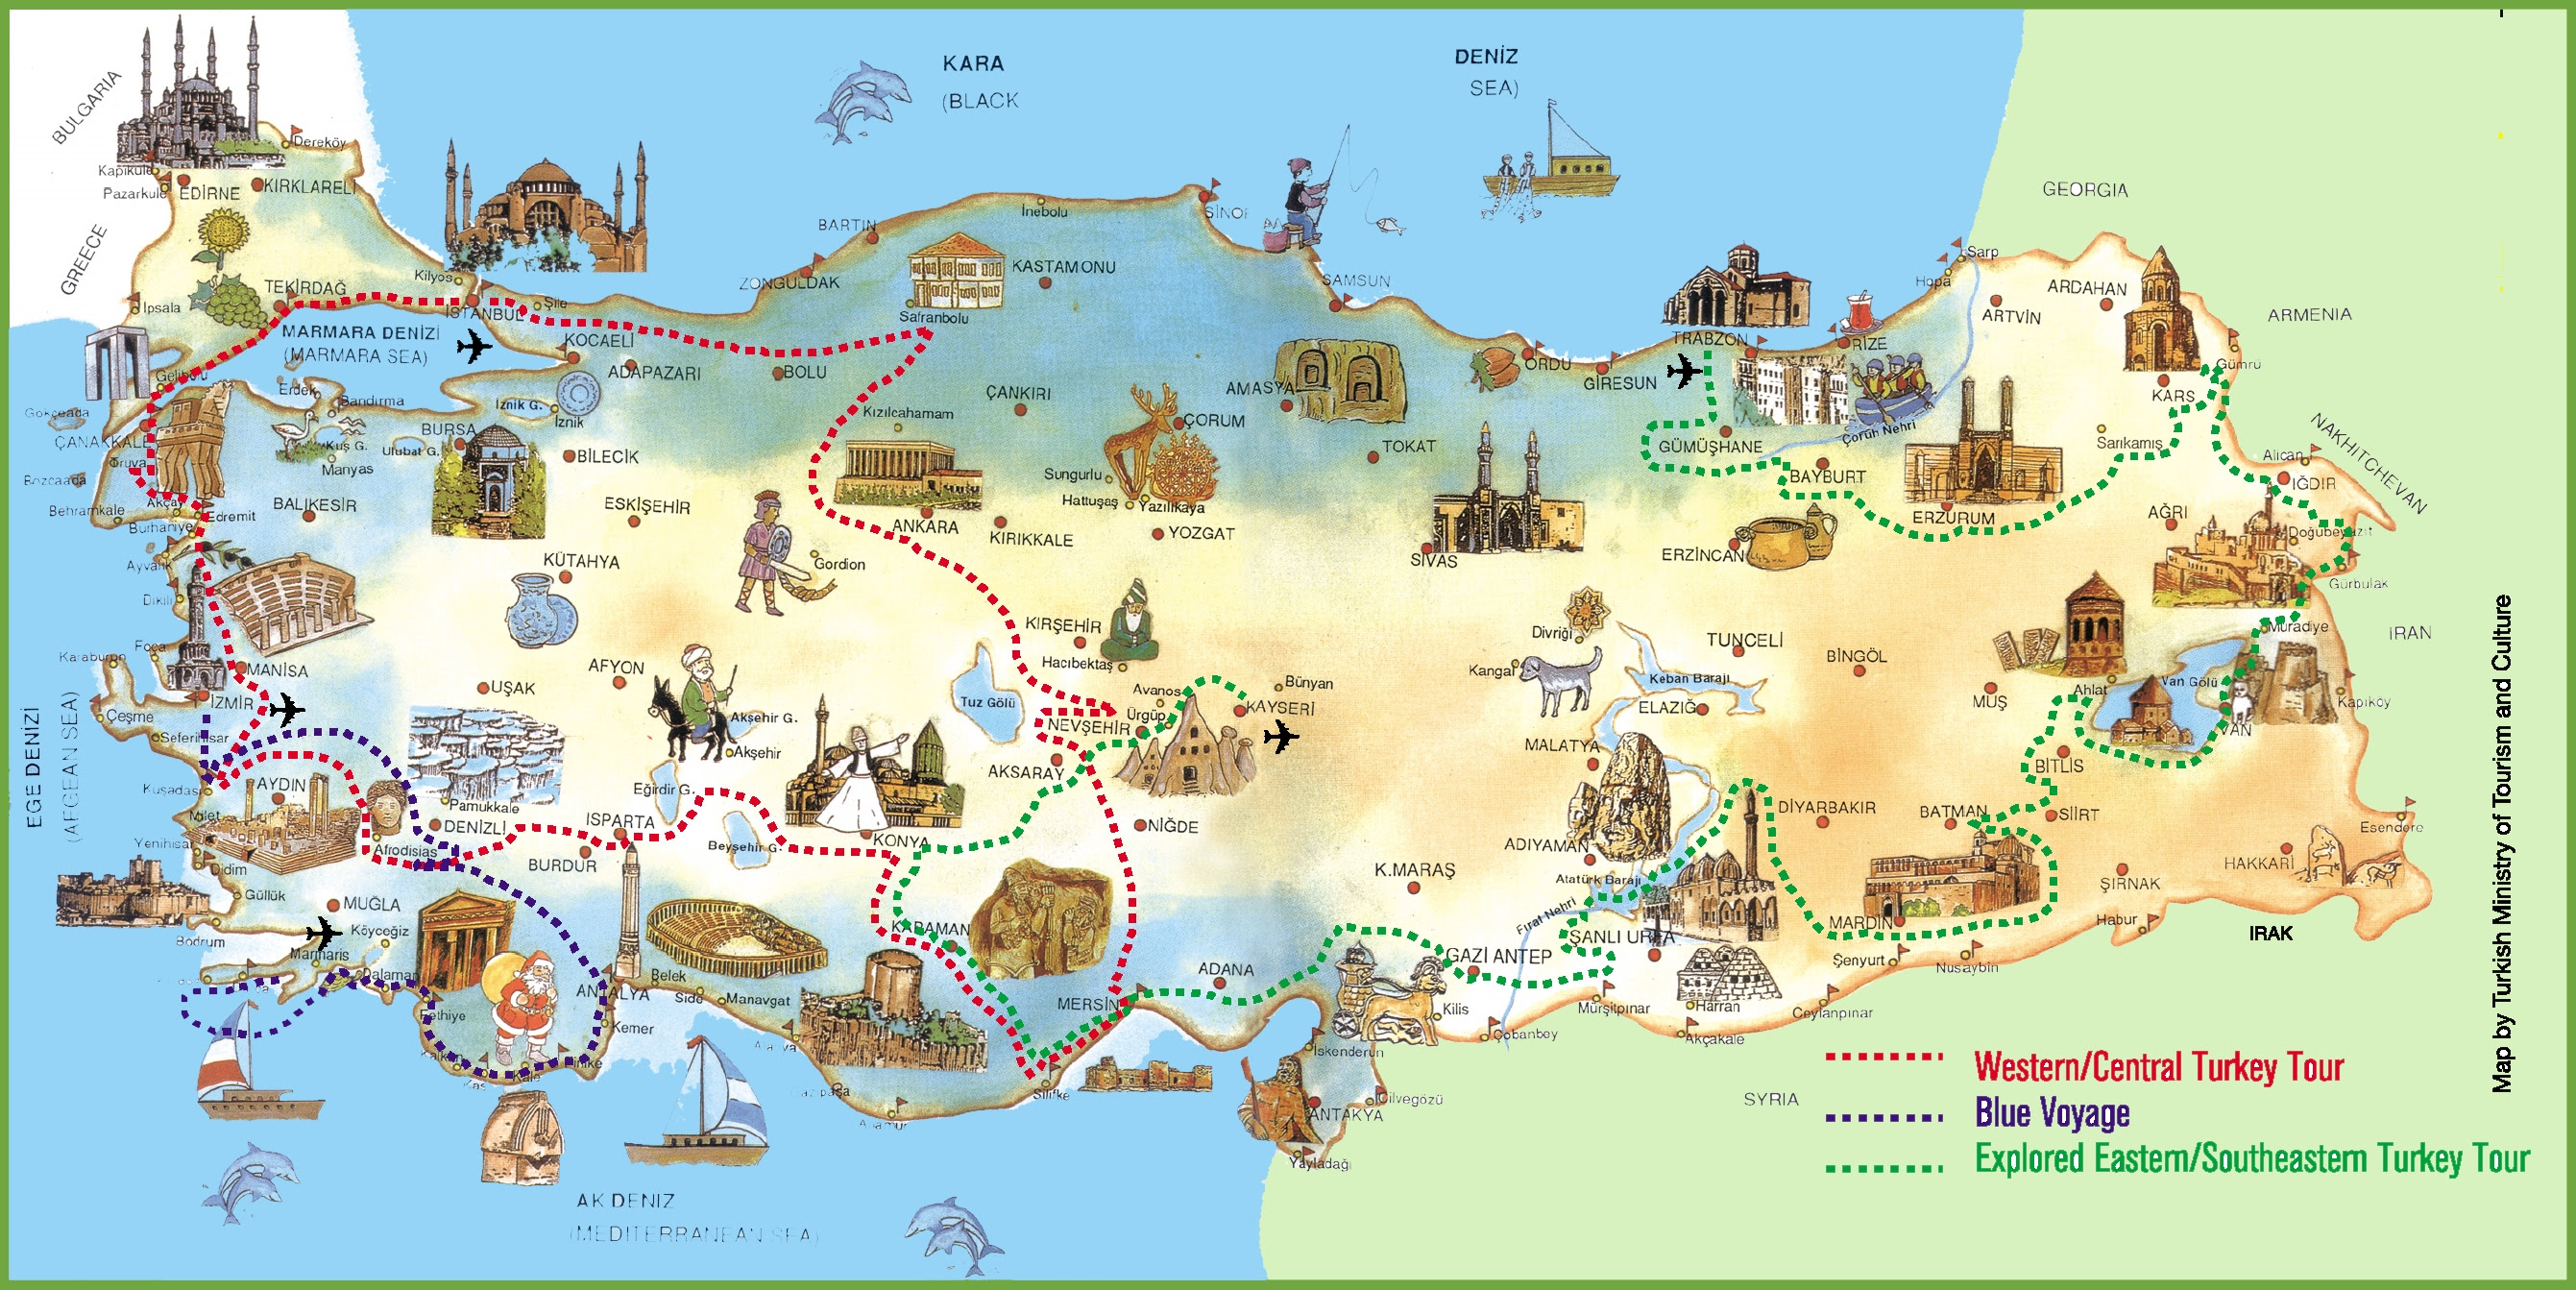 Brazil Map Tourist Attractions Attractions Near Me